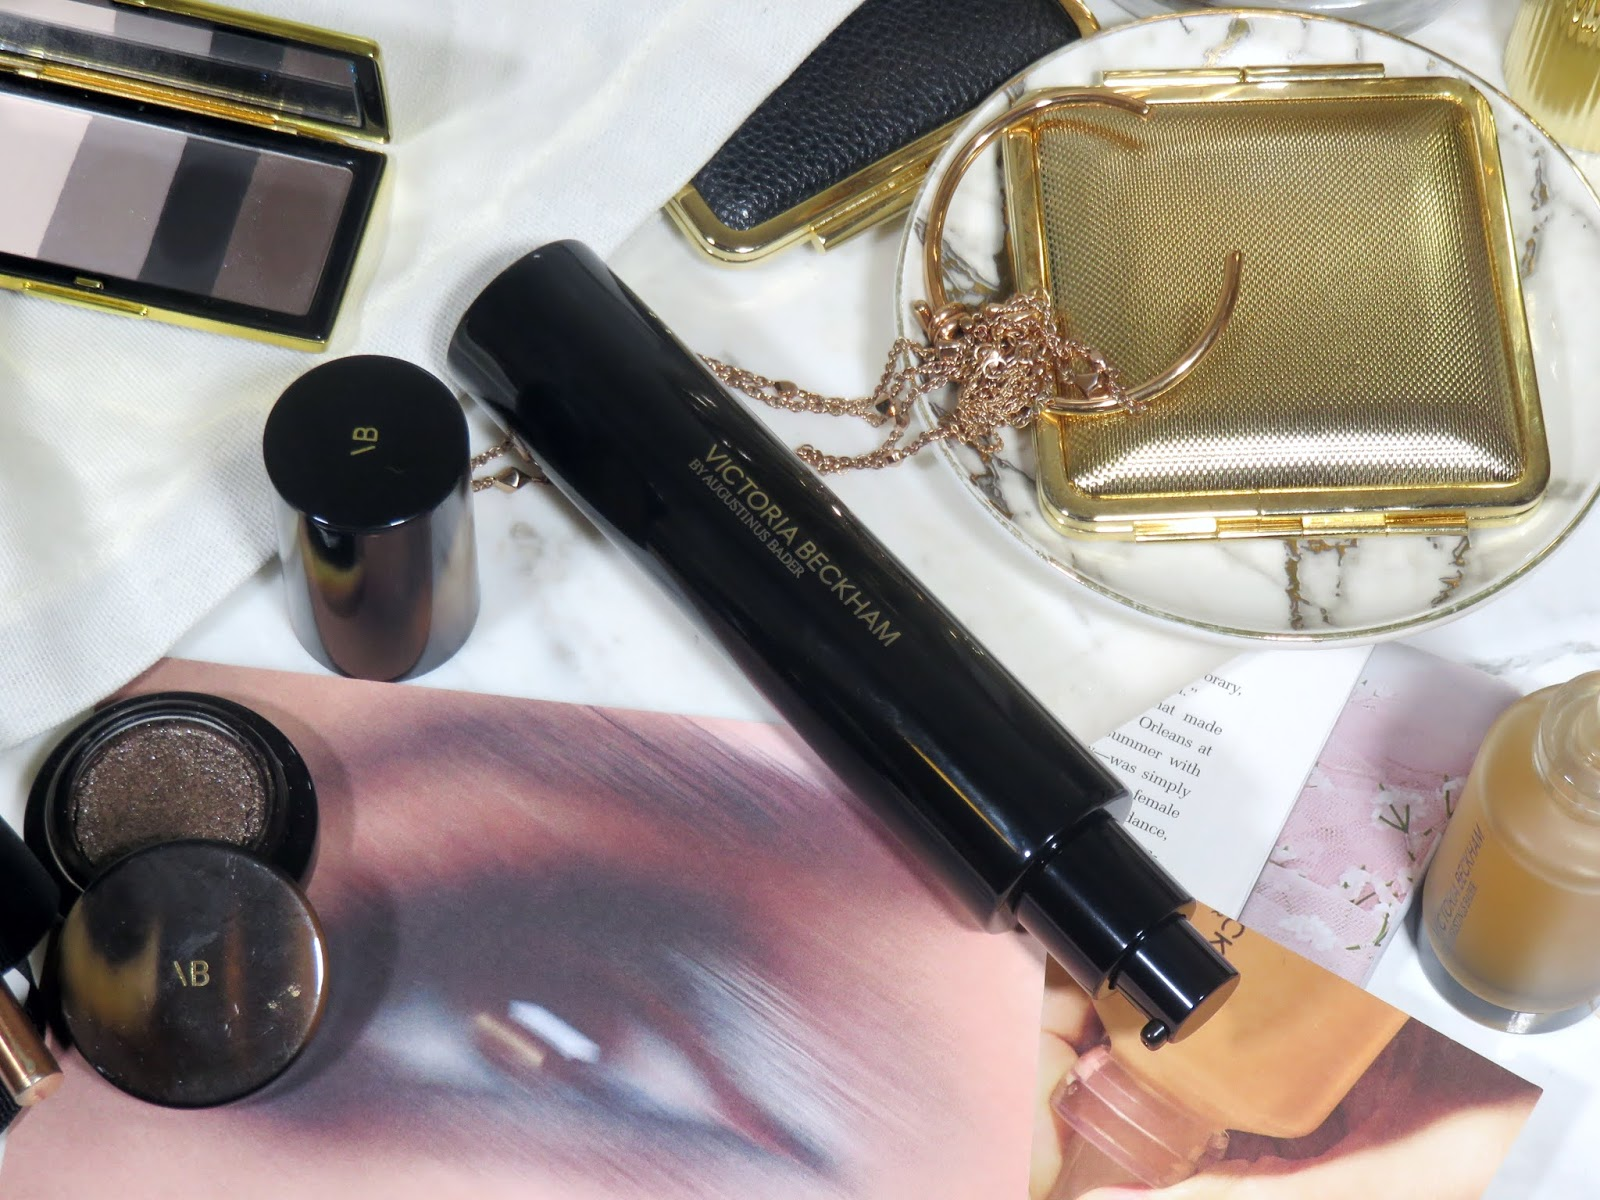 Victoria Beckham Beauty Cell Rejuvenating Priming Moisturizer in Golden Hour Review and Swatches